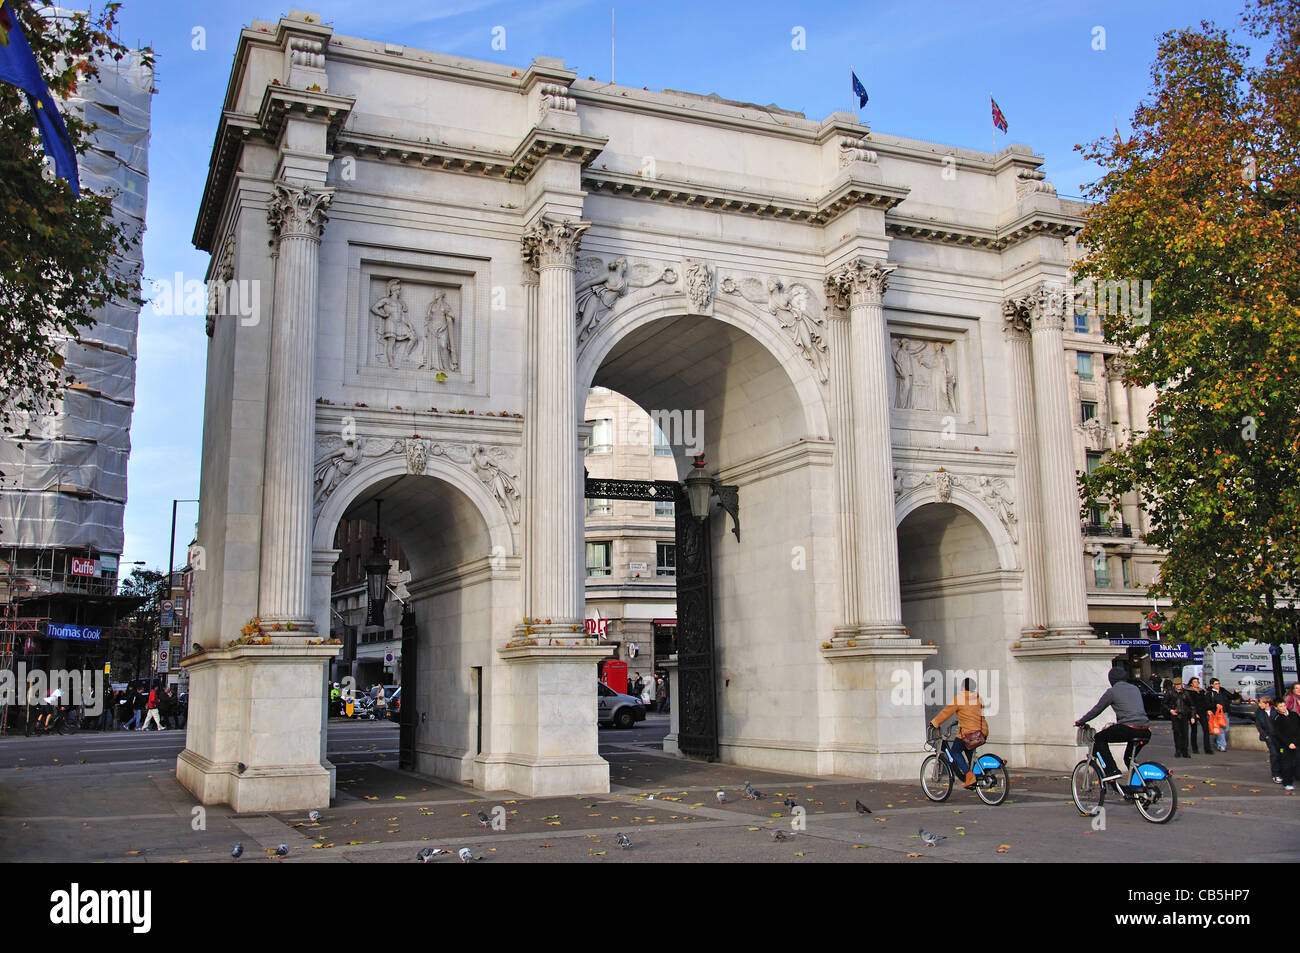 Marble Arch, Oxford Street, City of Westminster, London, Greater London, England, United Kingdom - Stock Image